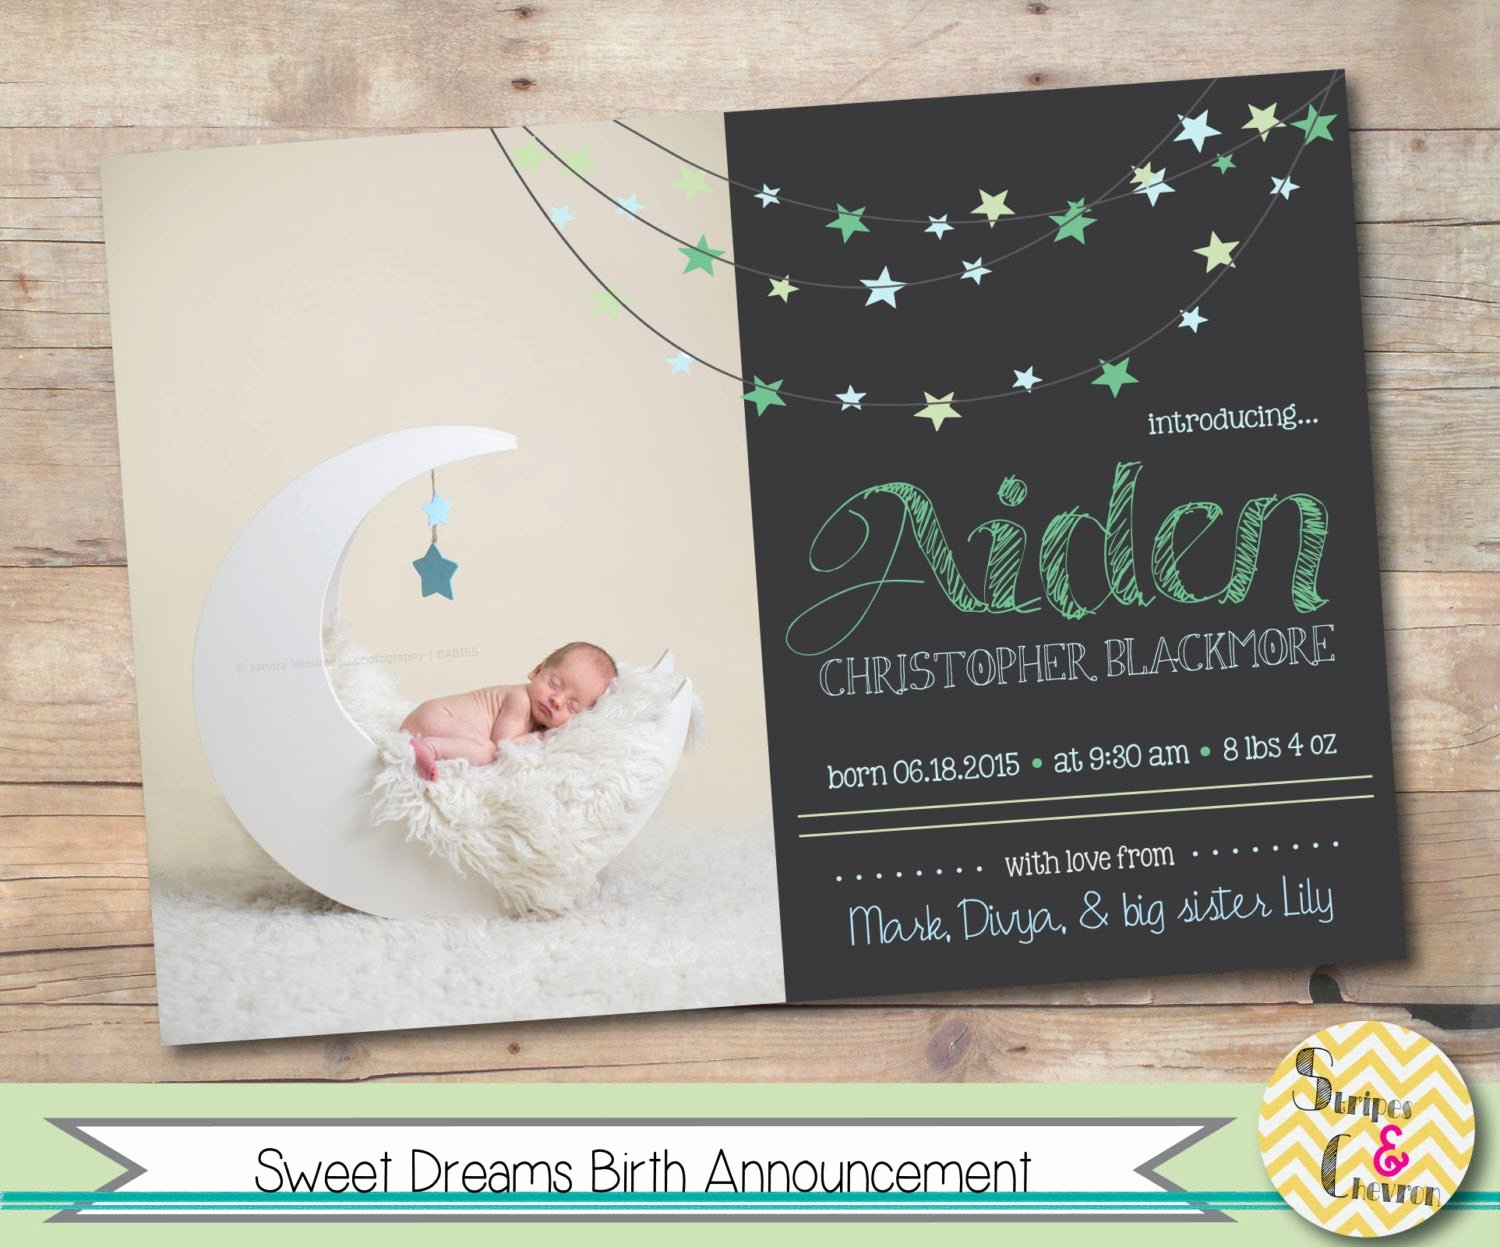 It's A Boy Announcement Template Fresh Baby Birth Announcement Template Baby Boy or Baby Girl Moon